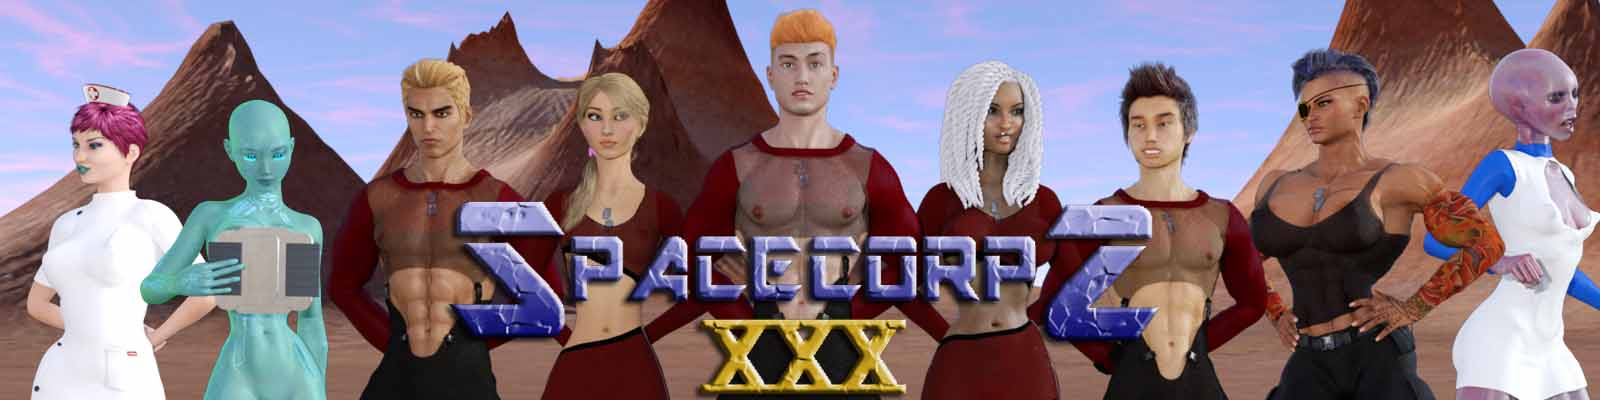 SpaceCorps-XXX-3d-sex-game-porn-game